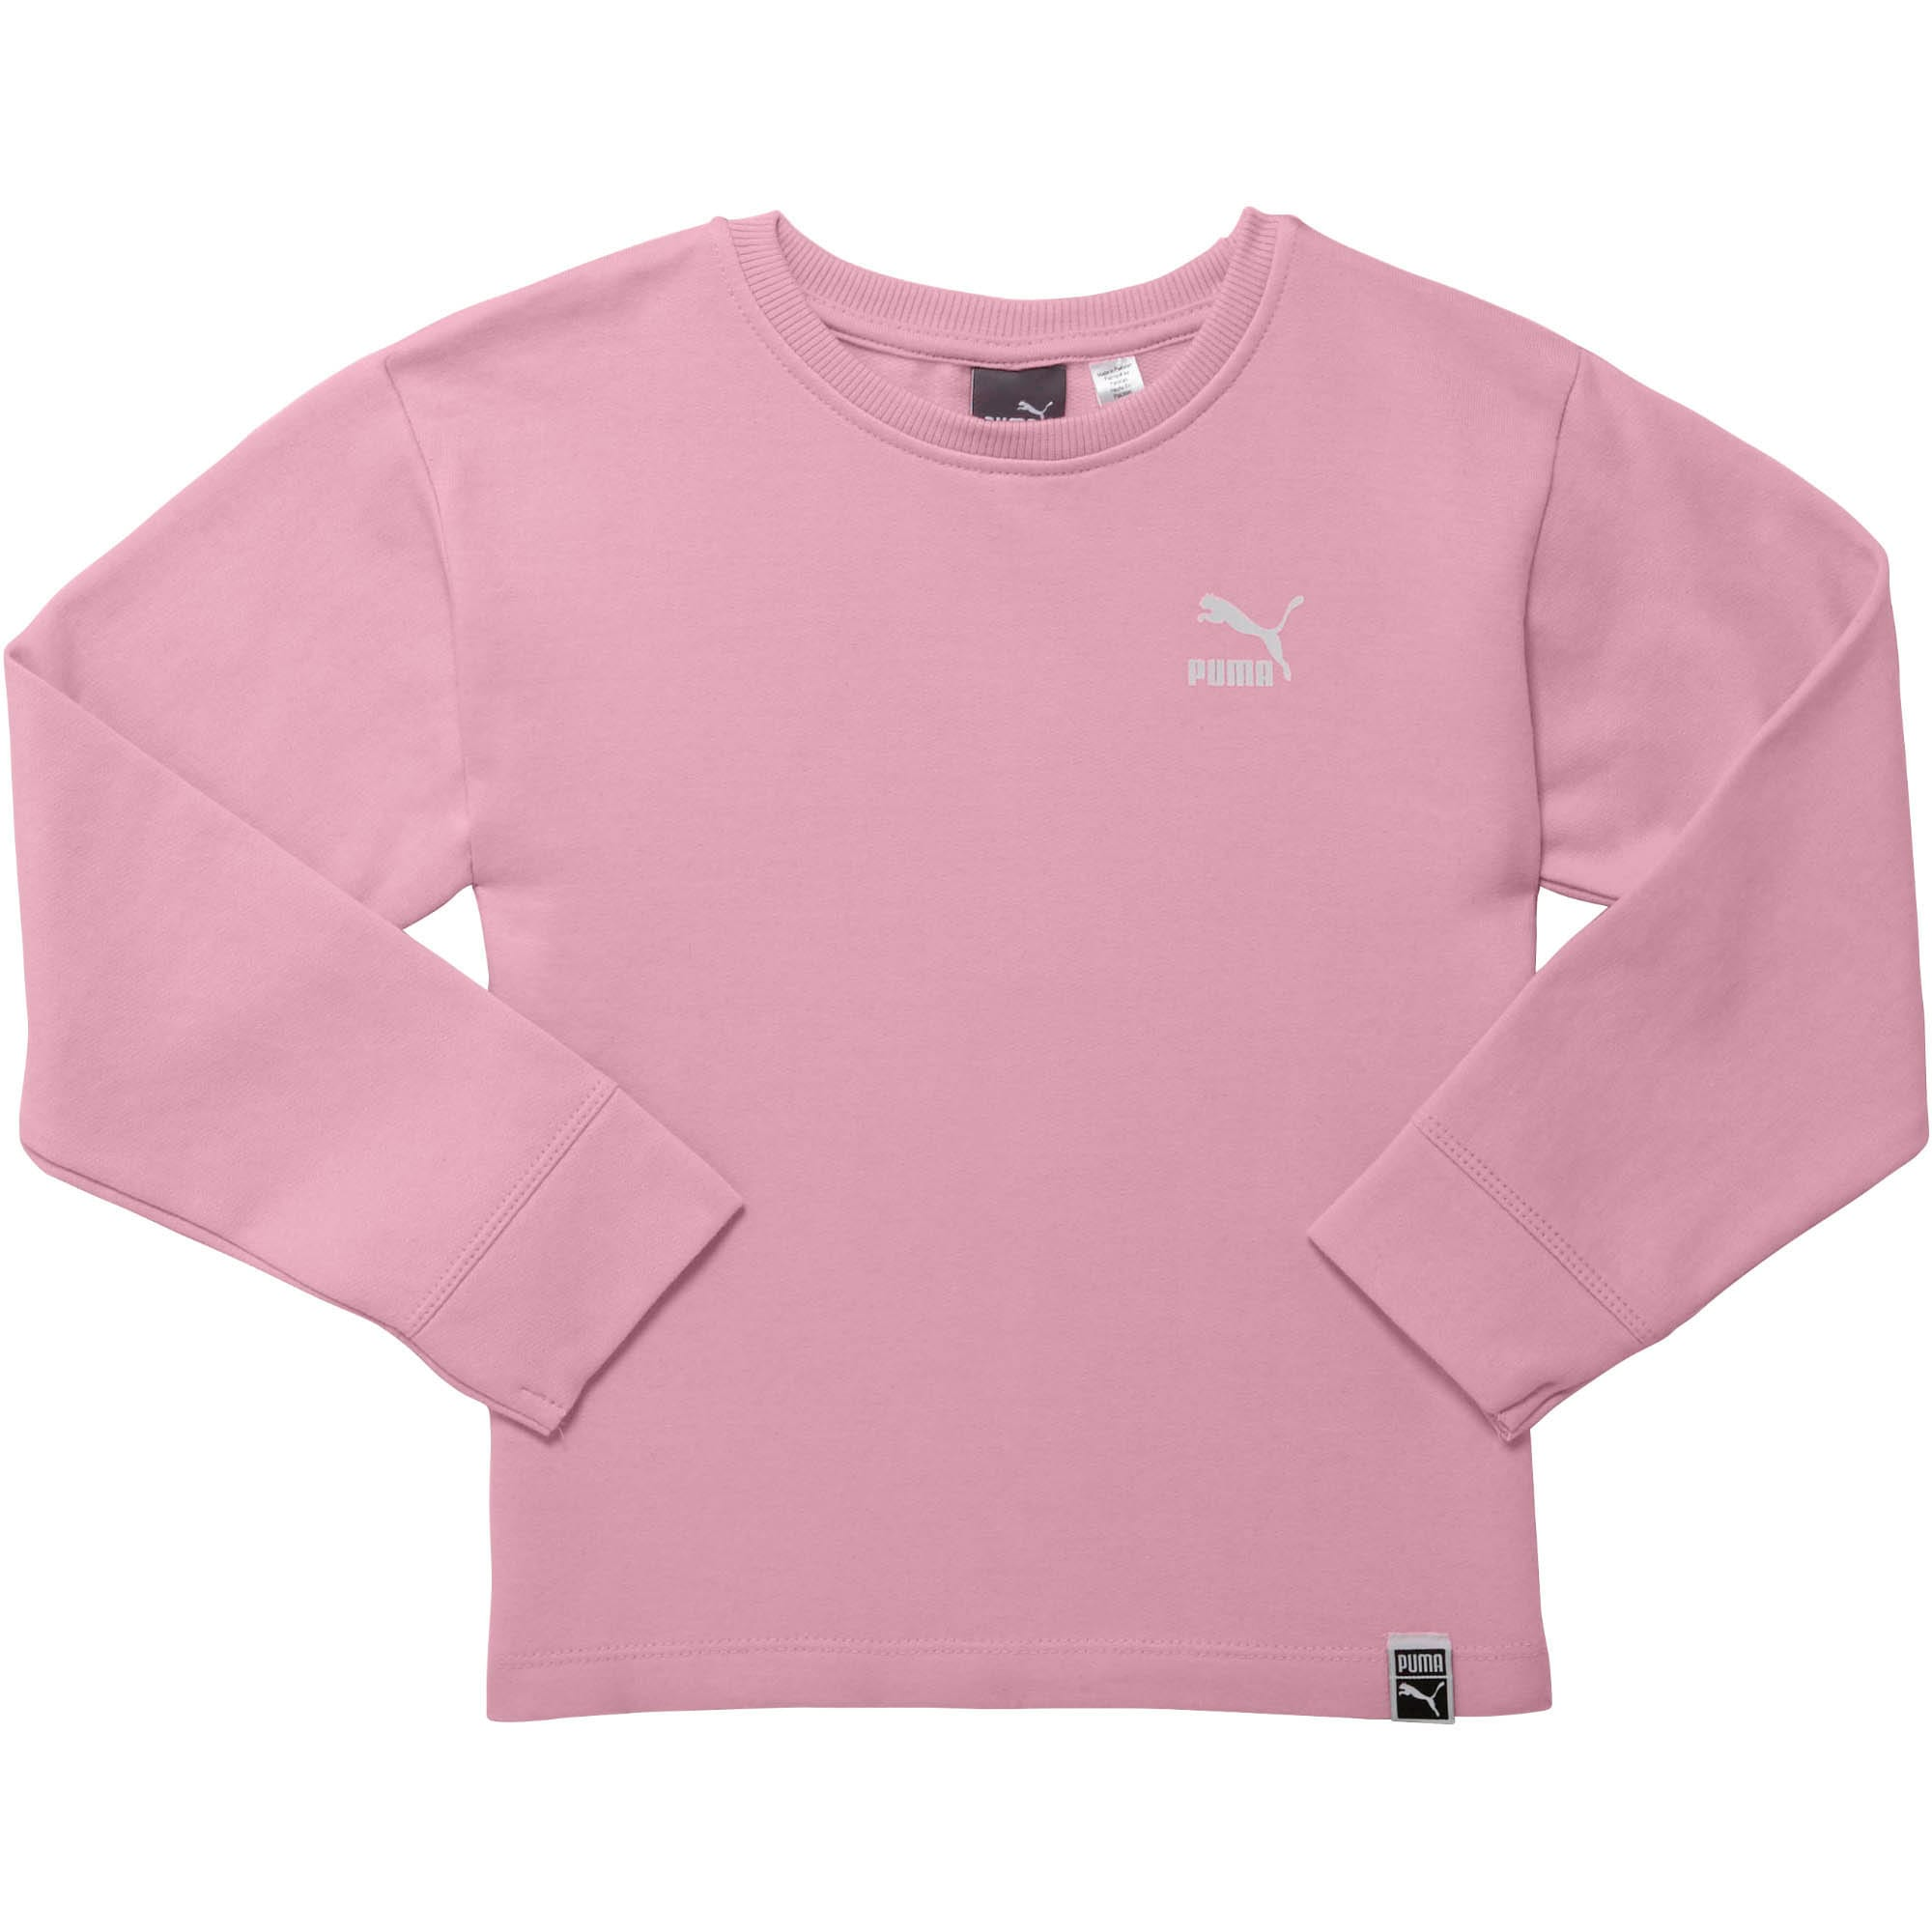 Thumbnail 1 of Little Kids' Oversized Fleece Pullover, PALE PINK, medium